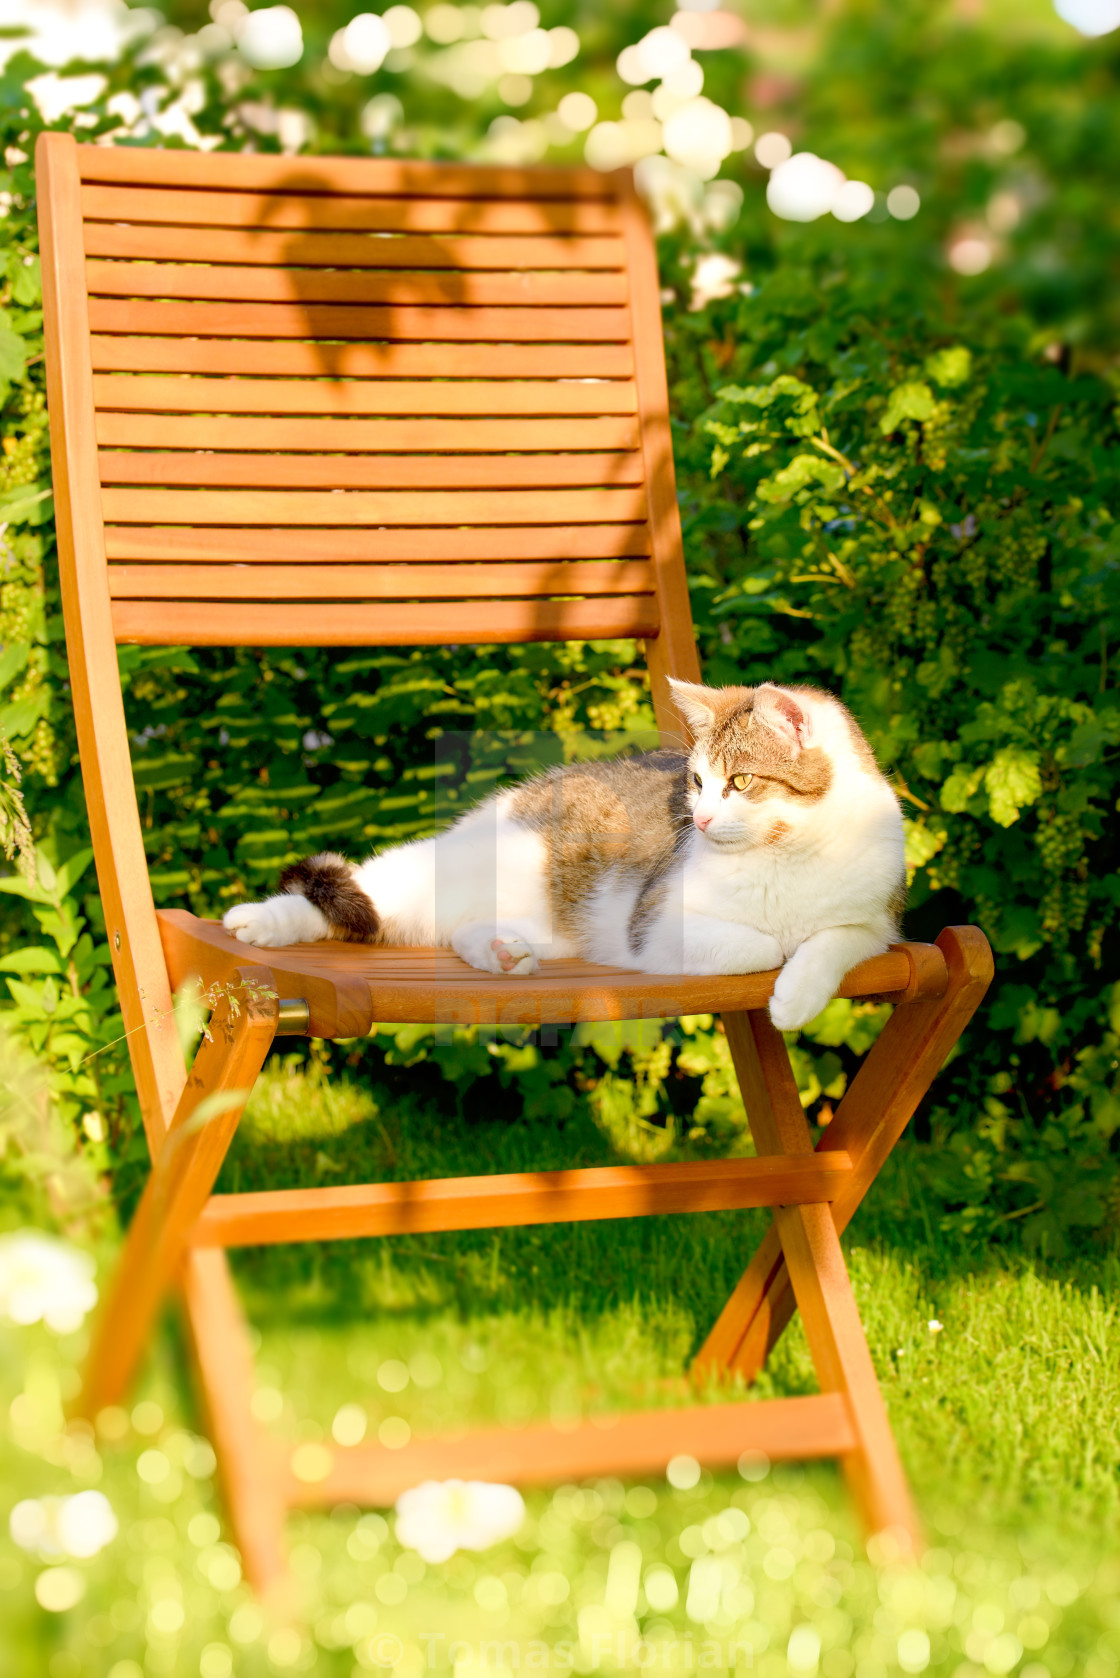 """Adult cat rests on wooden chair in garden"" stock image"